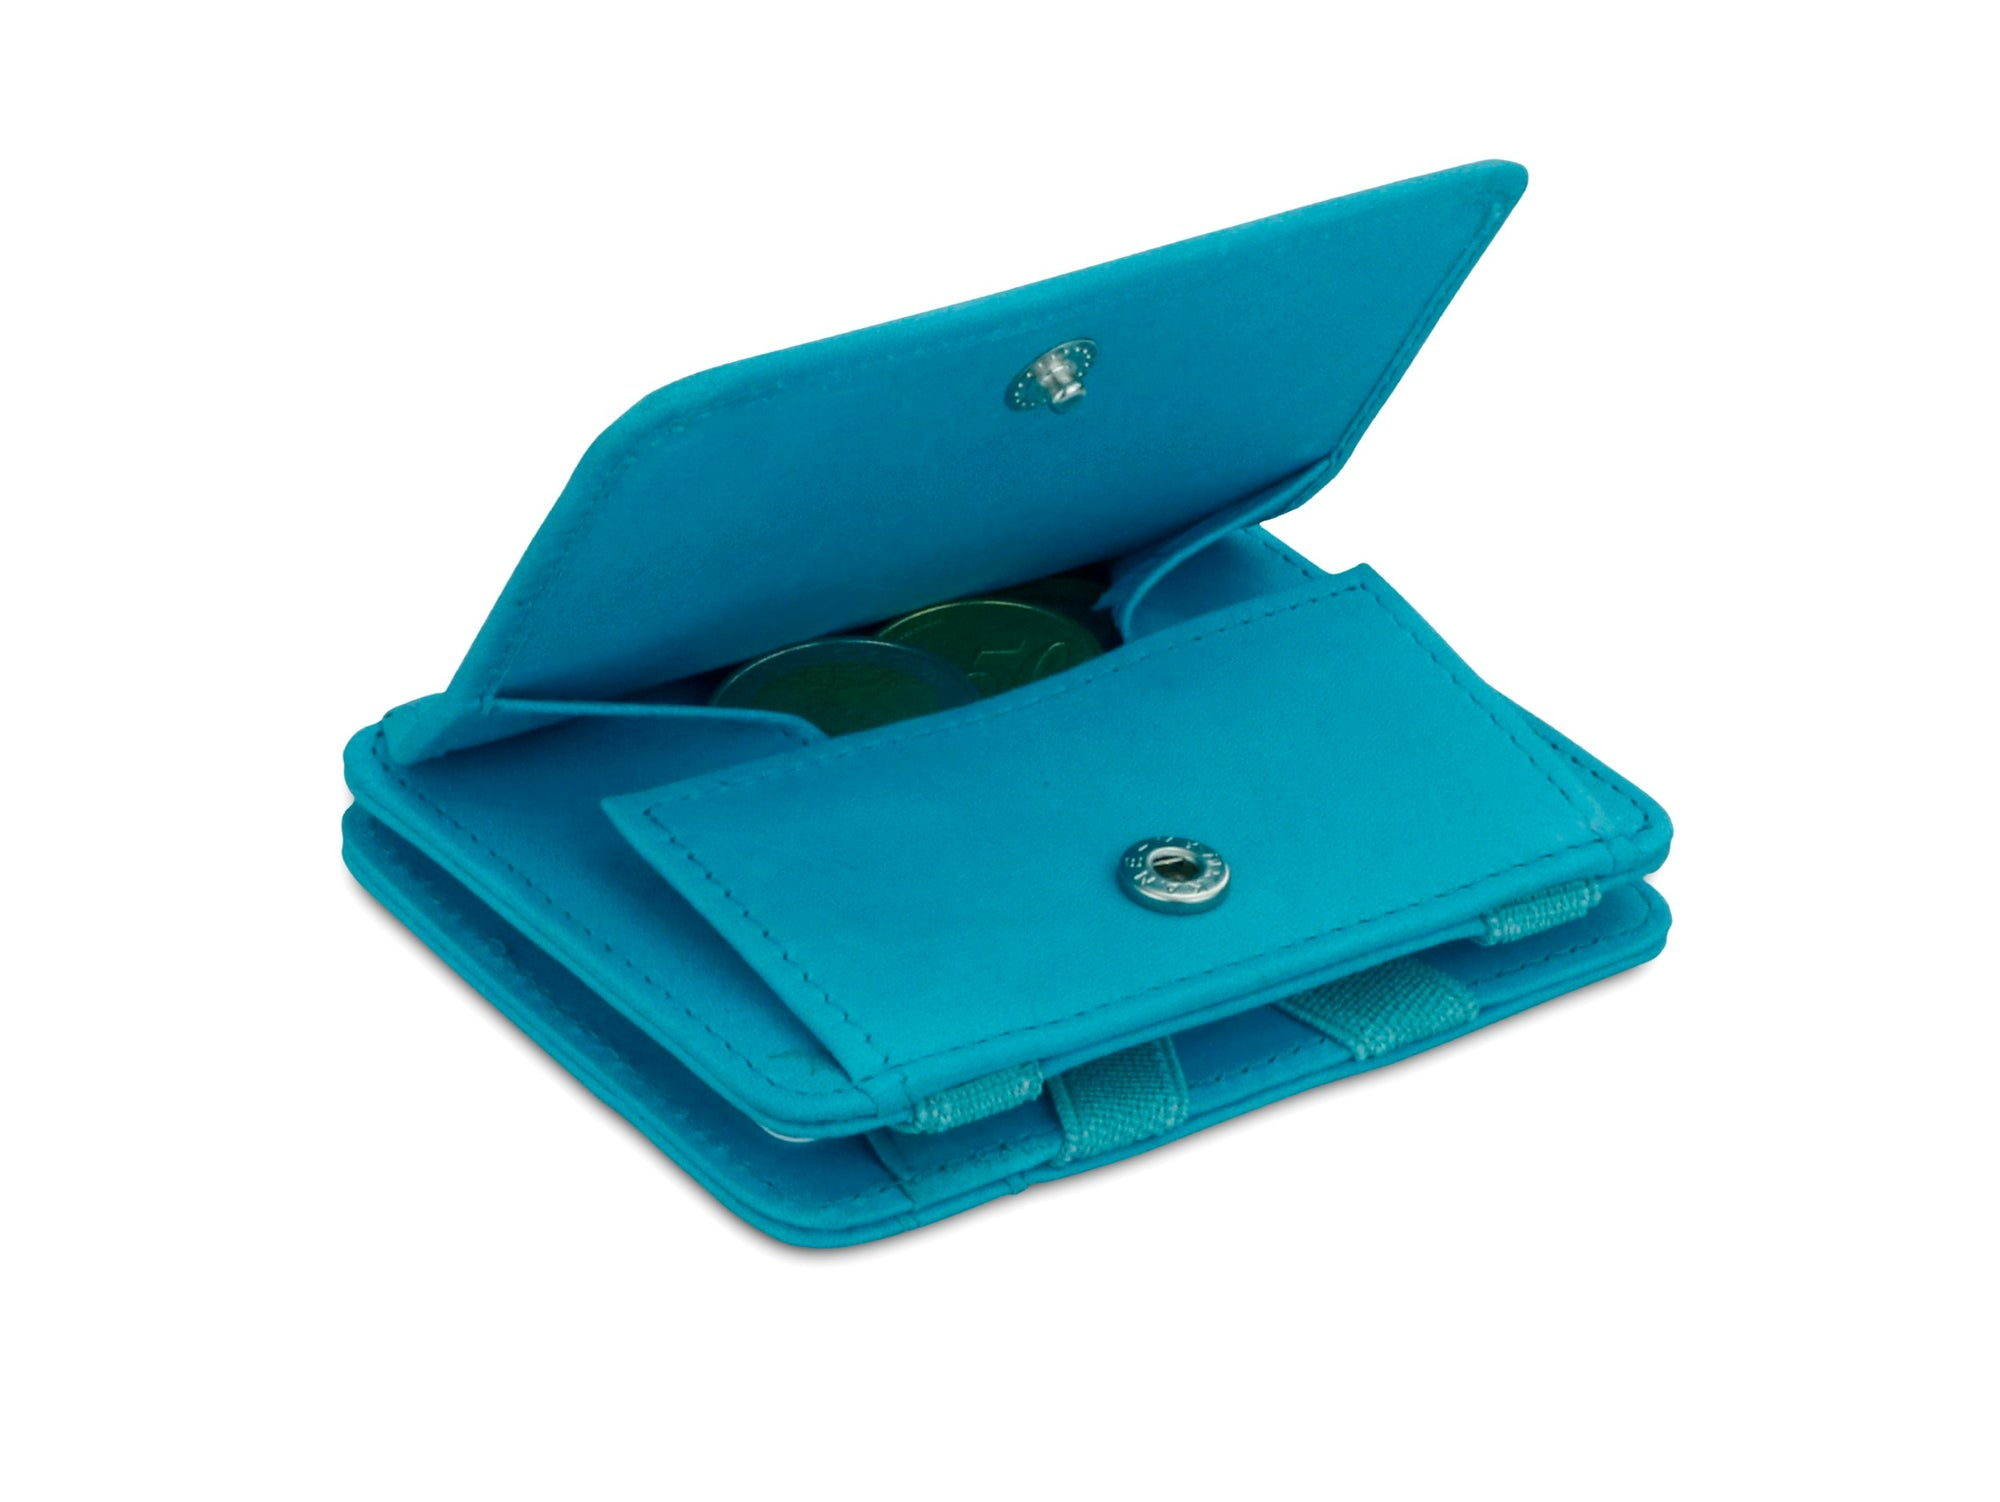 Magic Coin Wallet RFID Hunterson - Turquoise - 0